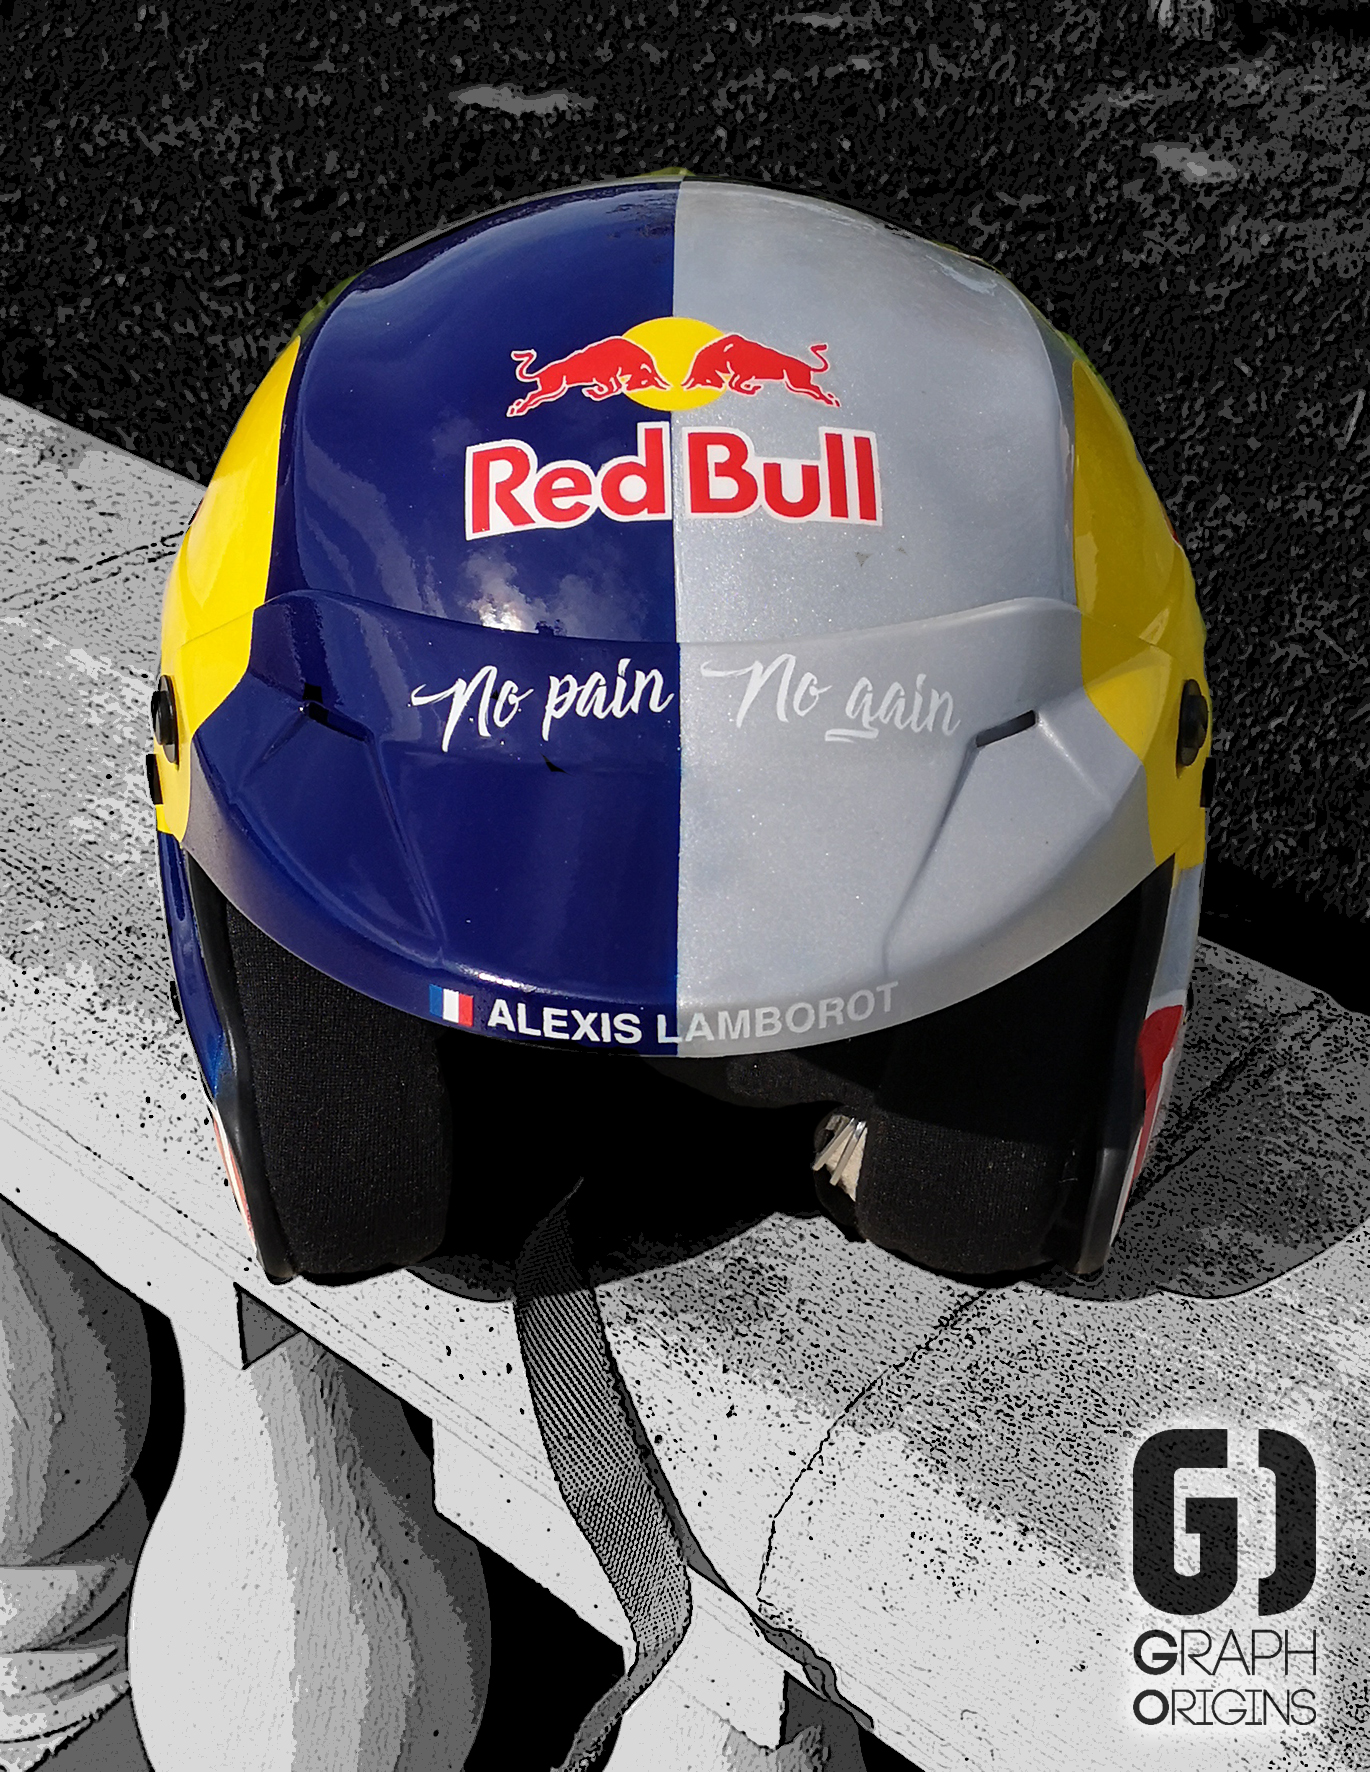 Casque Red Bull custom graph origins 3